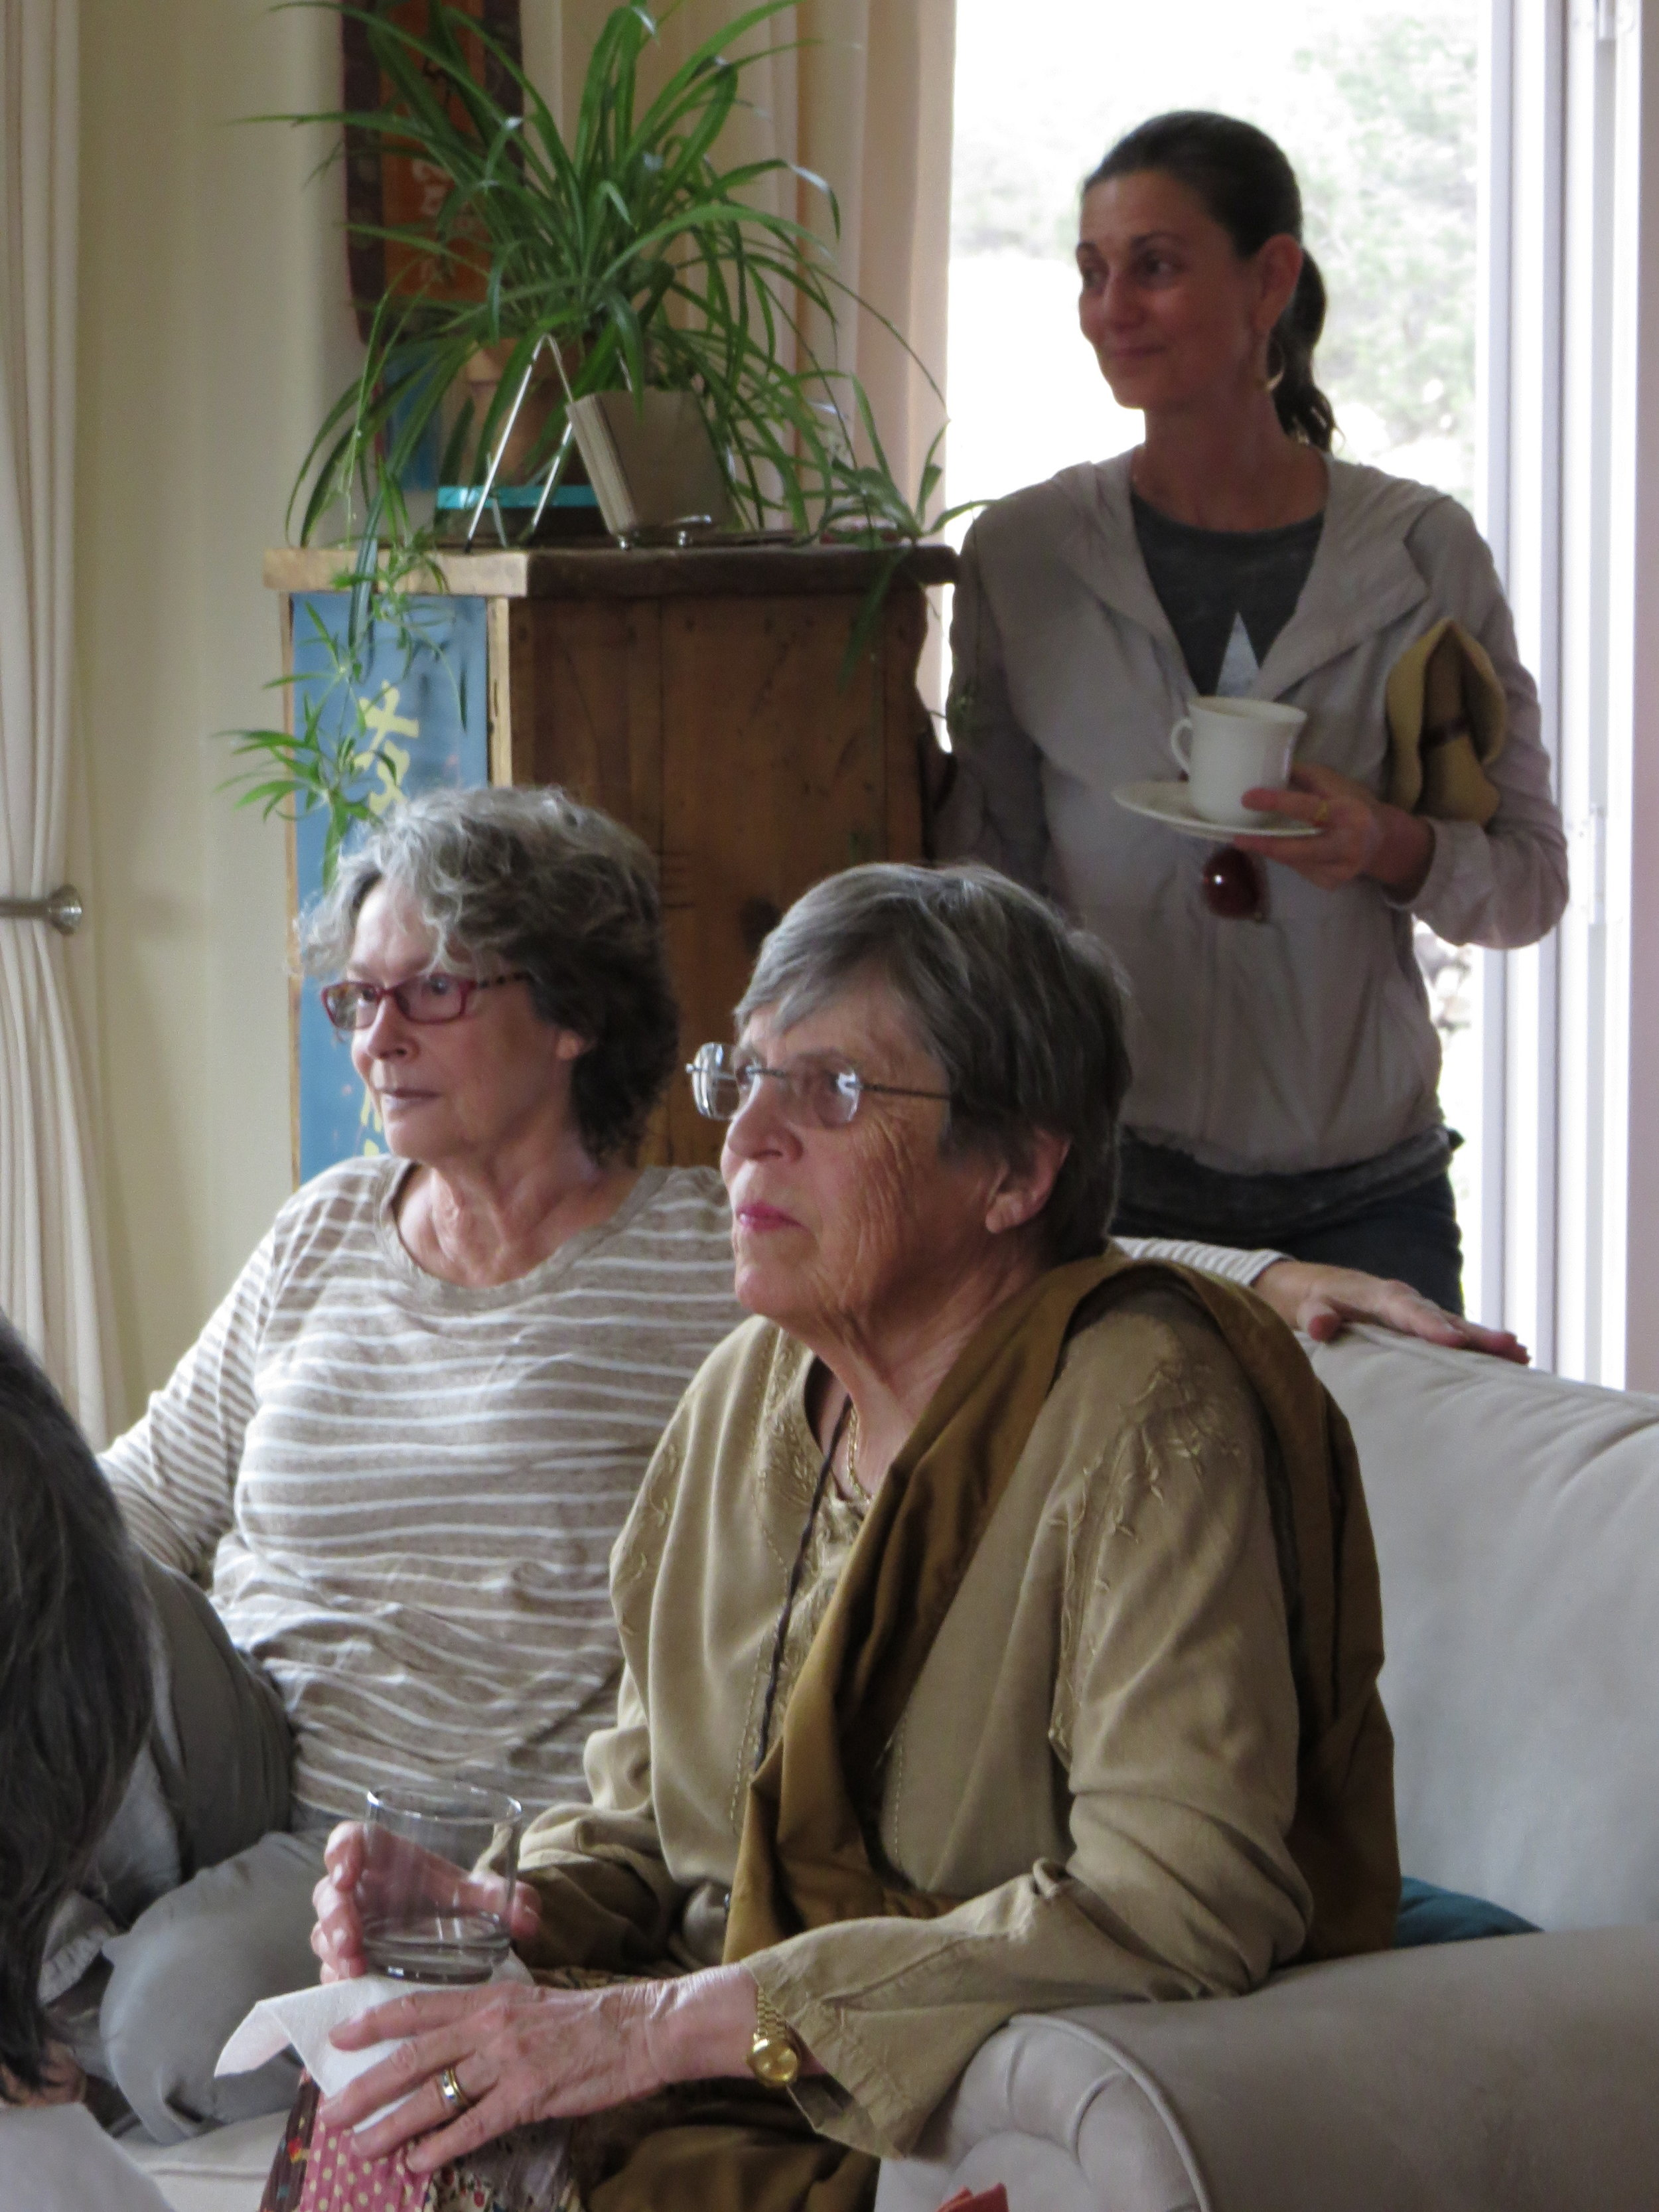 During one of the presentations, Elizabeth Mattis-Namgyel, Pema Chöling's Education Advisor, looks on, along with Barbara Green and M.L. Mackie.